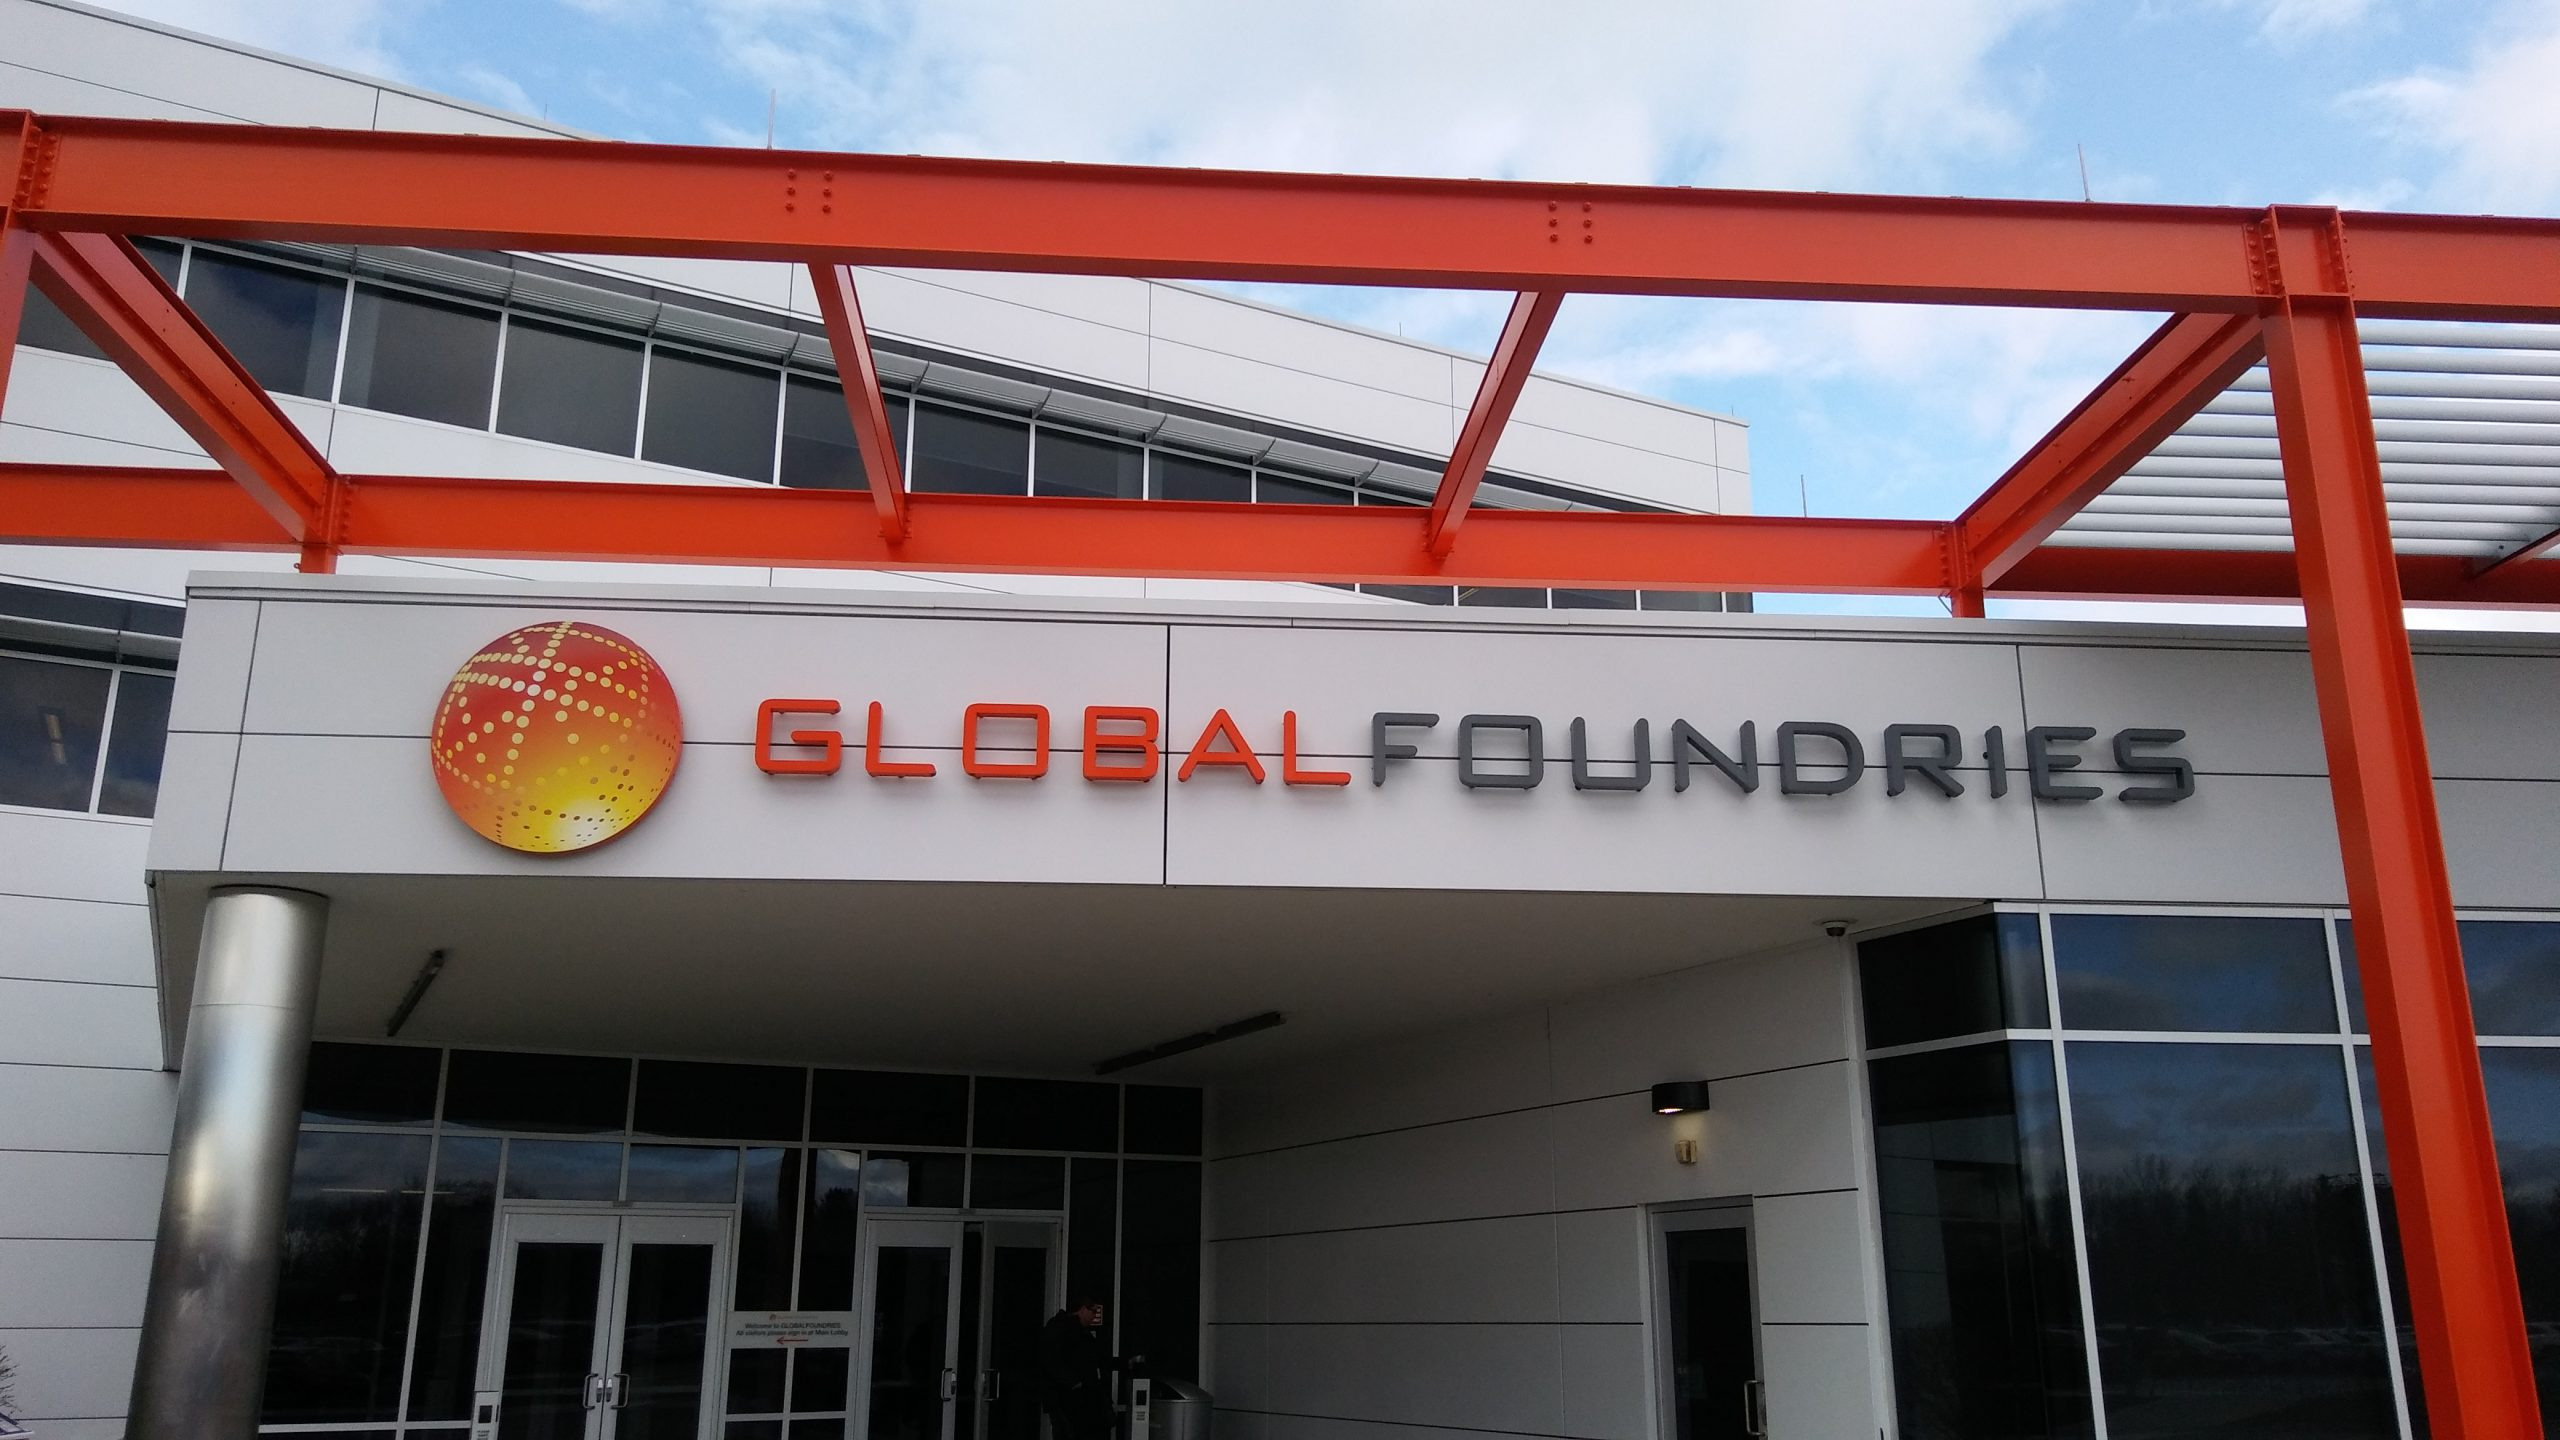 Global Foundries in Malta NY